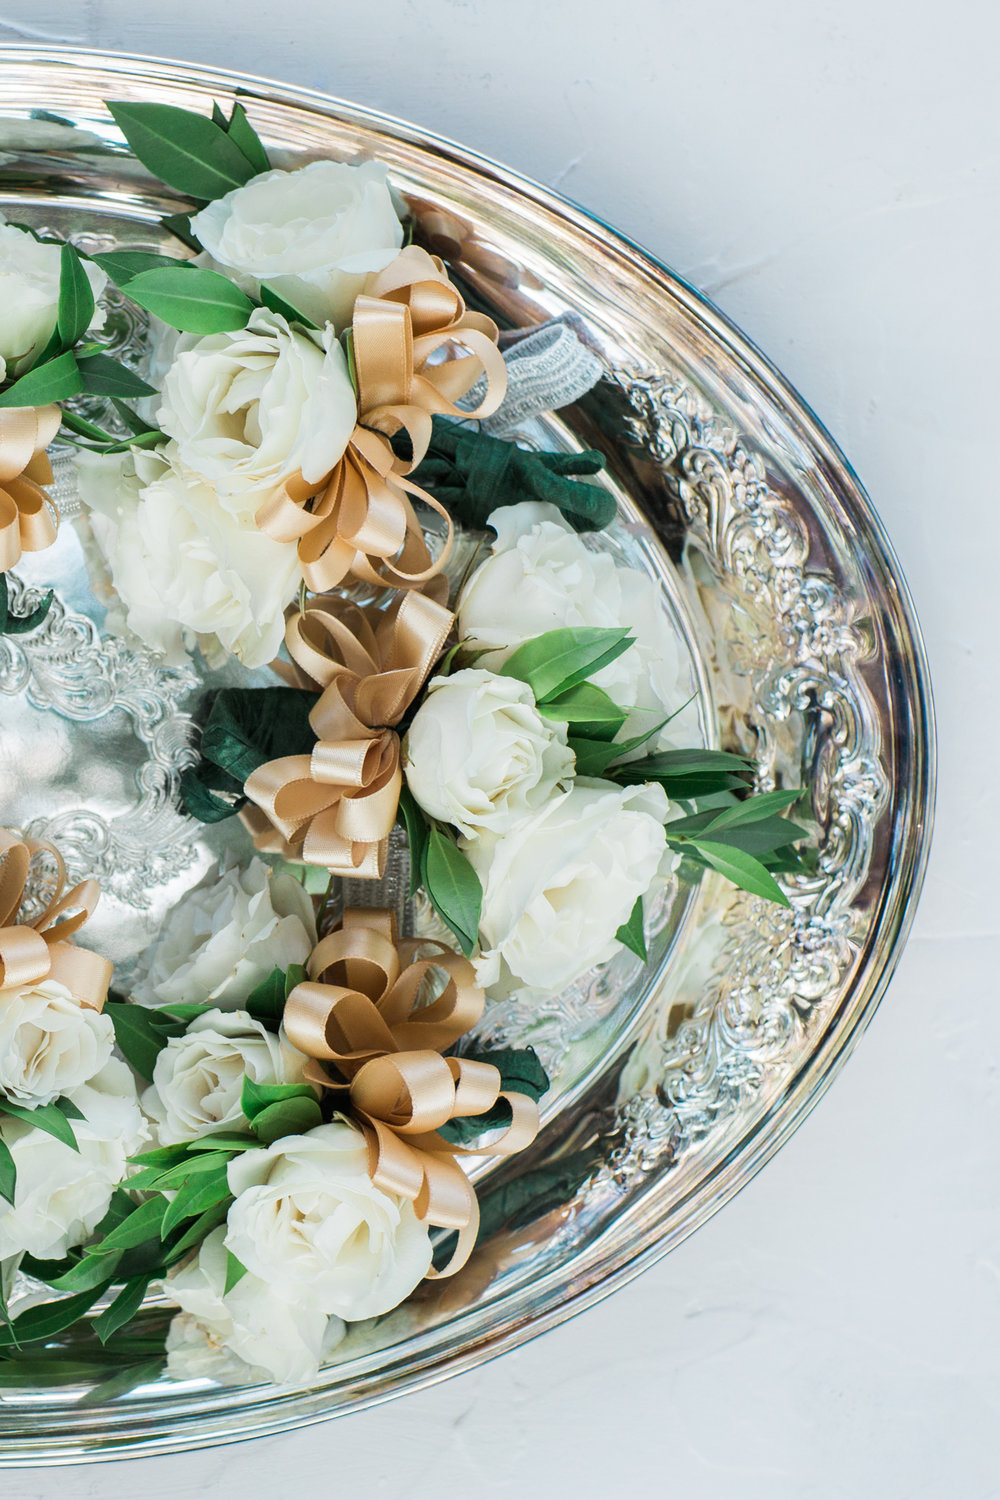 white flower boutonnieres with gold ribbons on silver platter